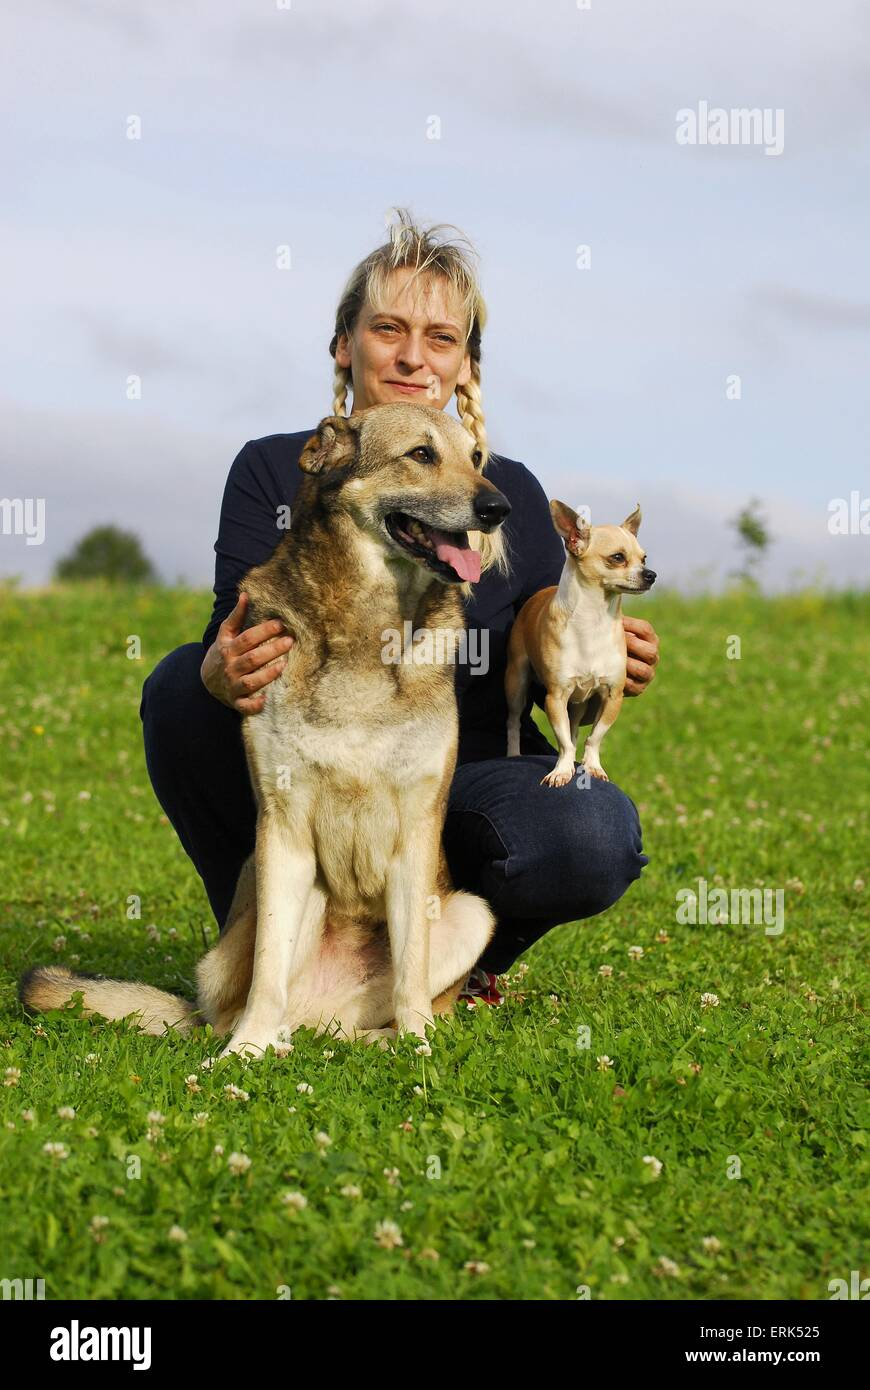 woman with dogs - Stock Image